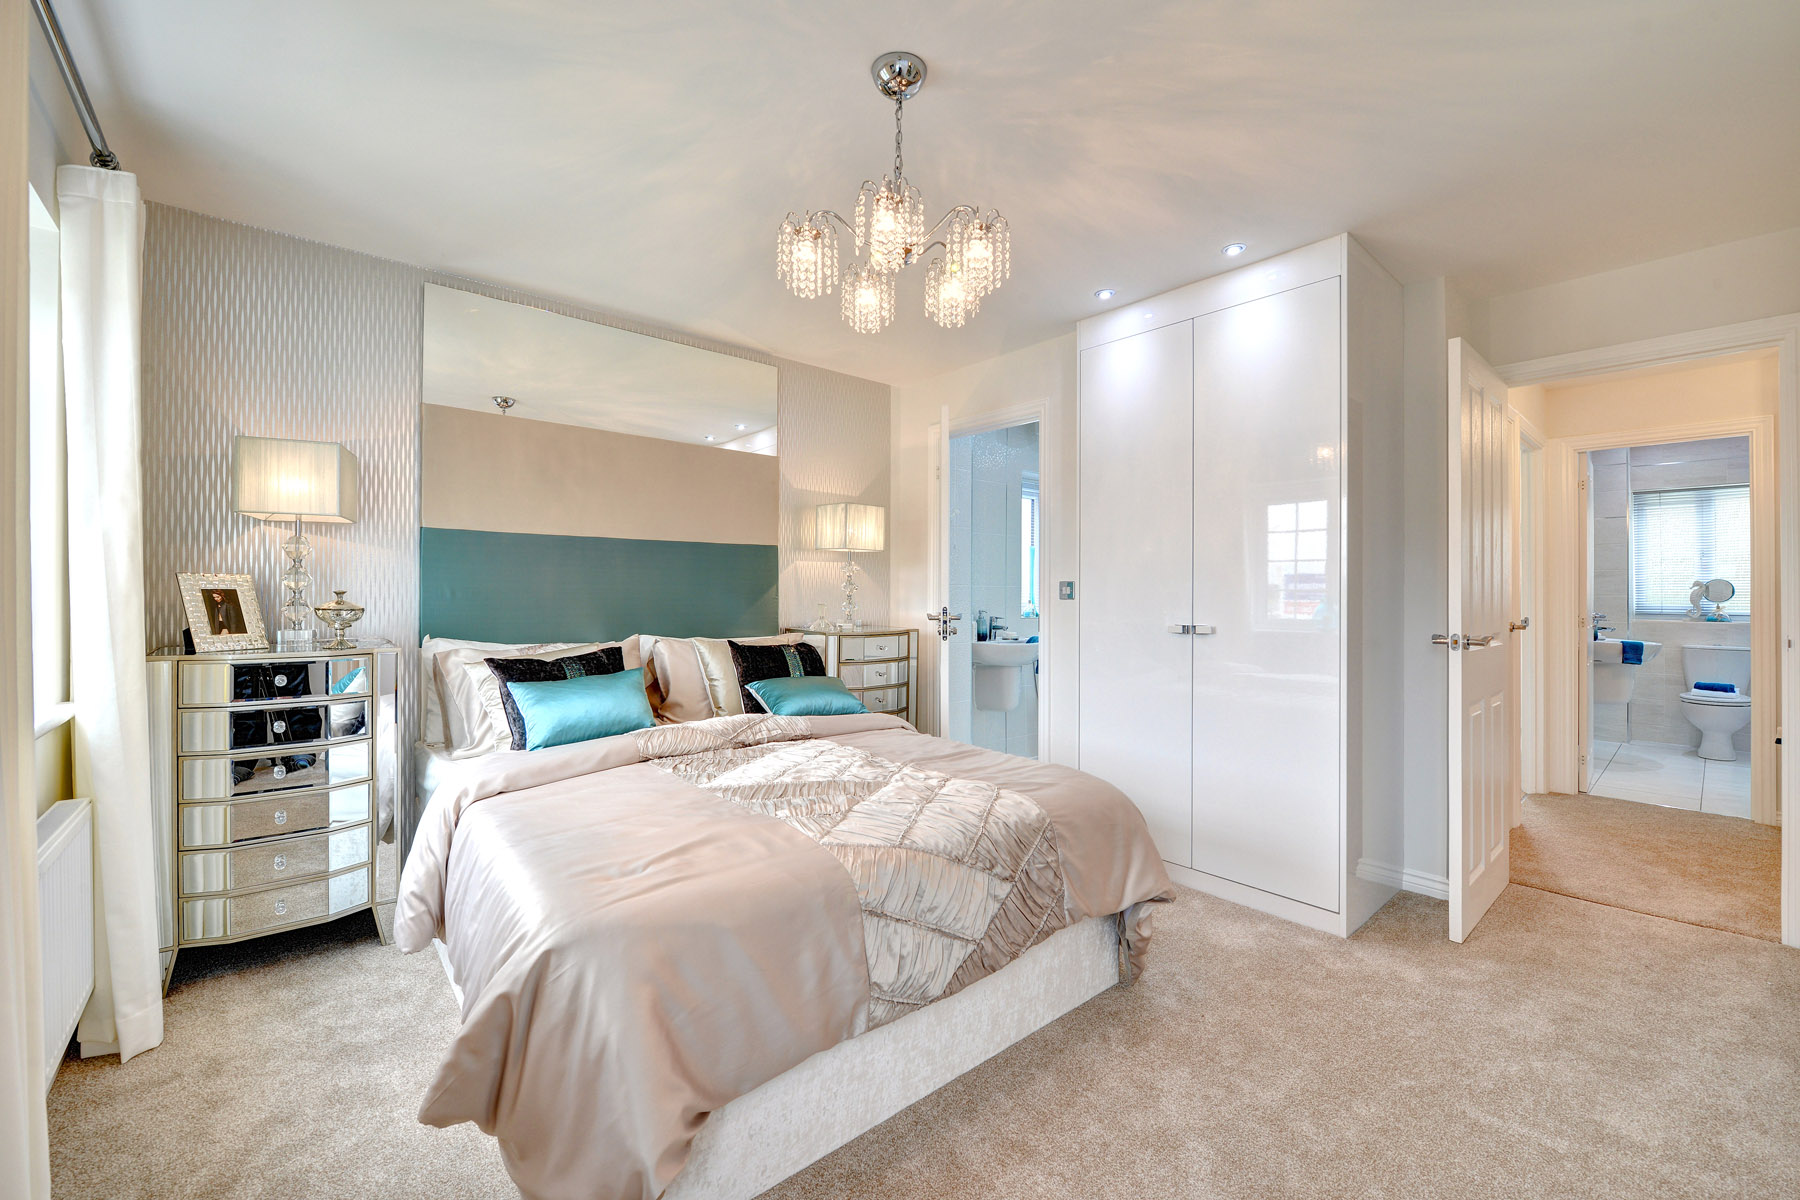 The Bradenham - Showhome - 4 bedroom detached home